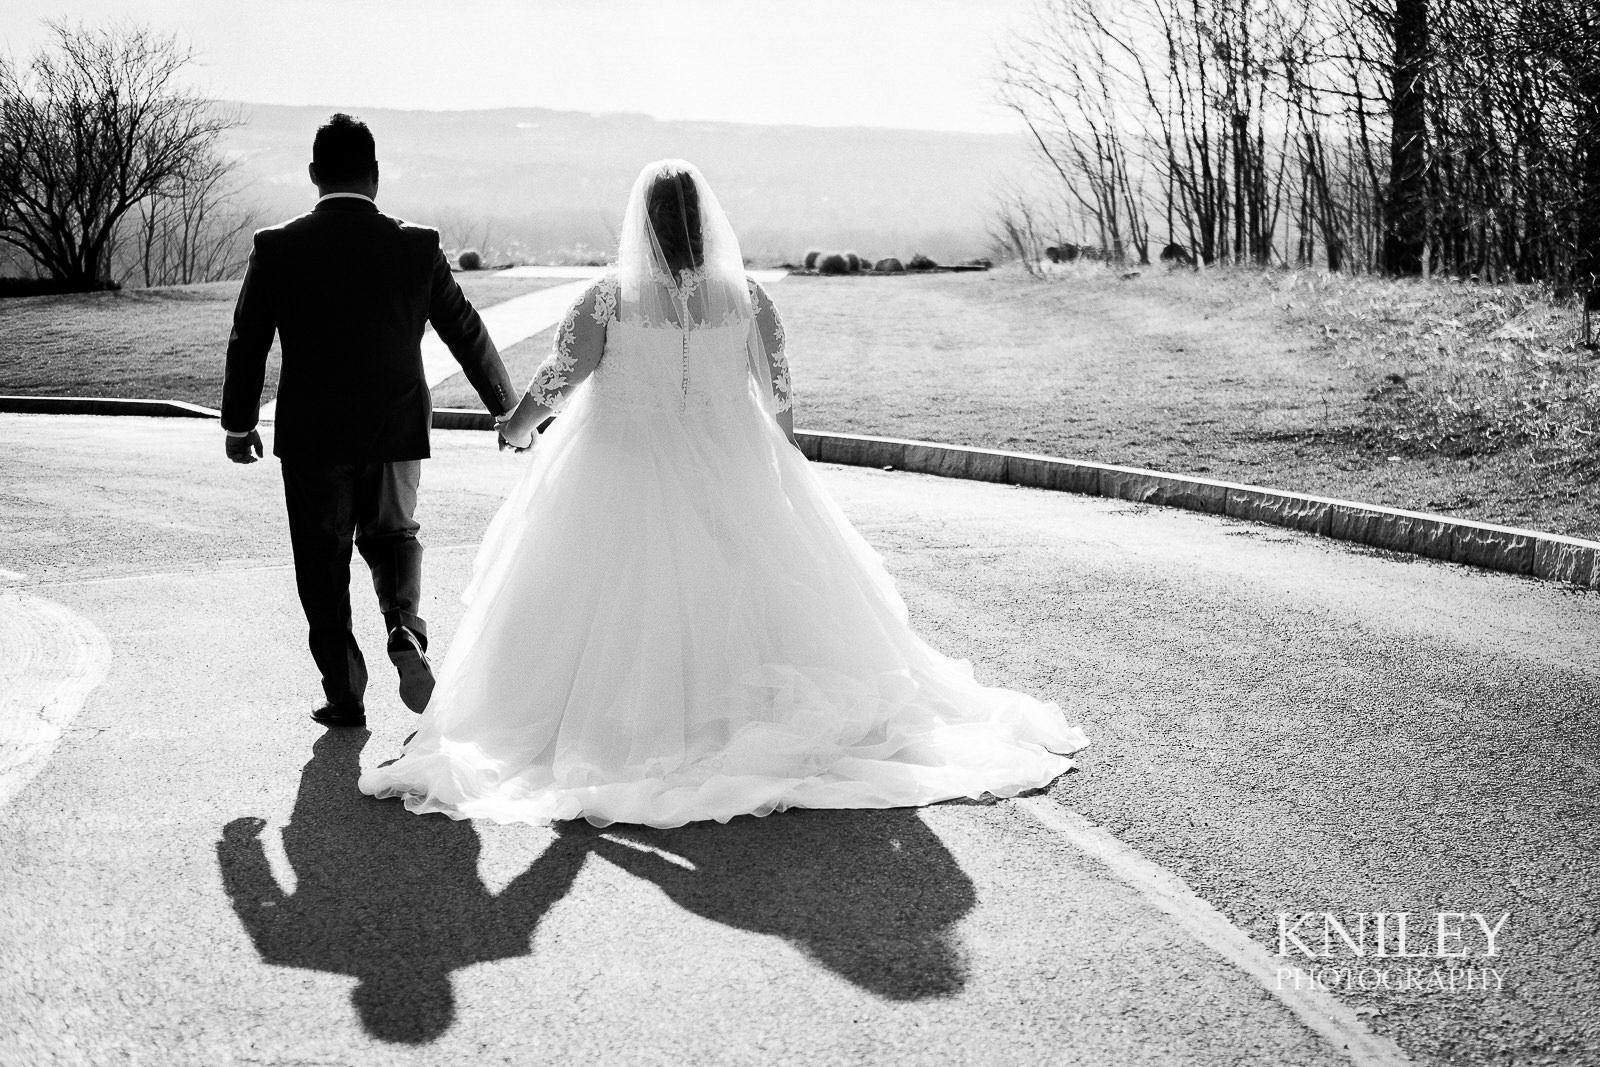 057 - Woodcliff Hotel - Rochester NY wedding photo - Kniley Photography.jpg